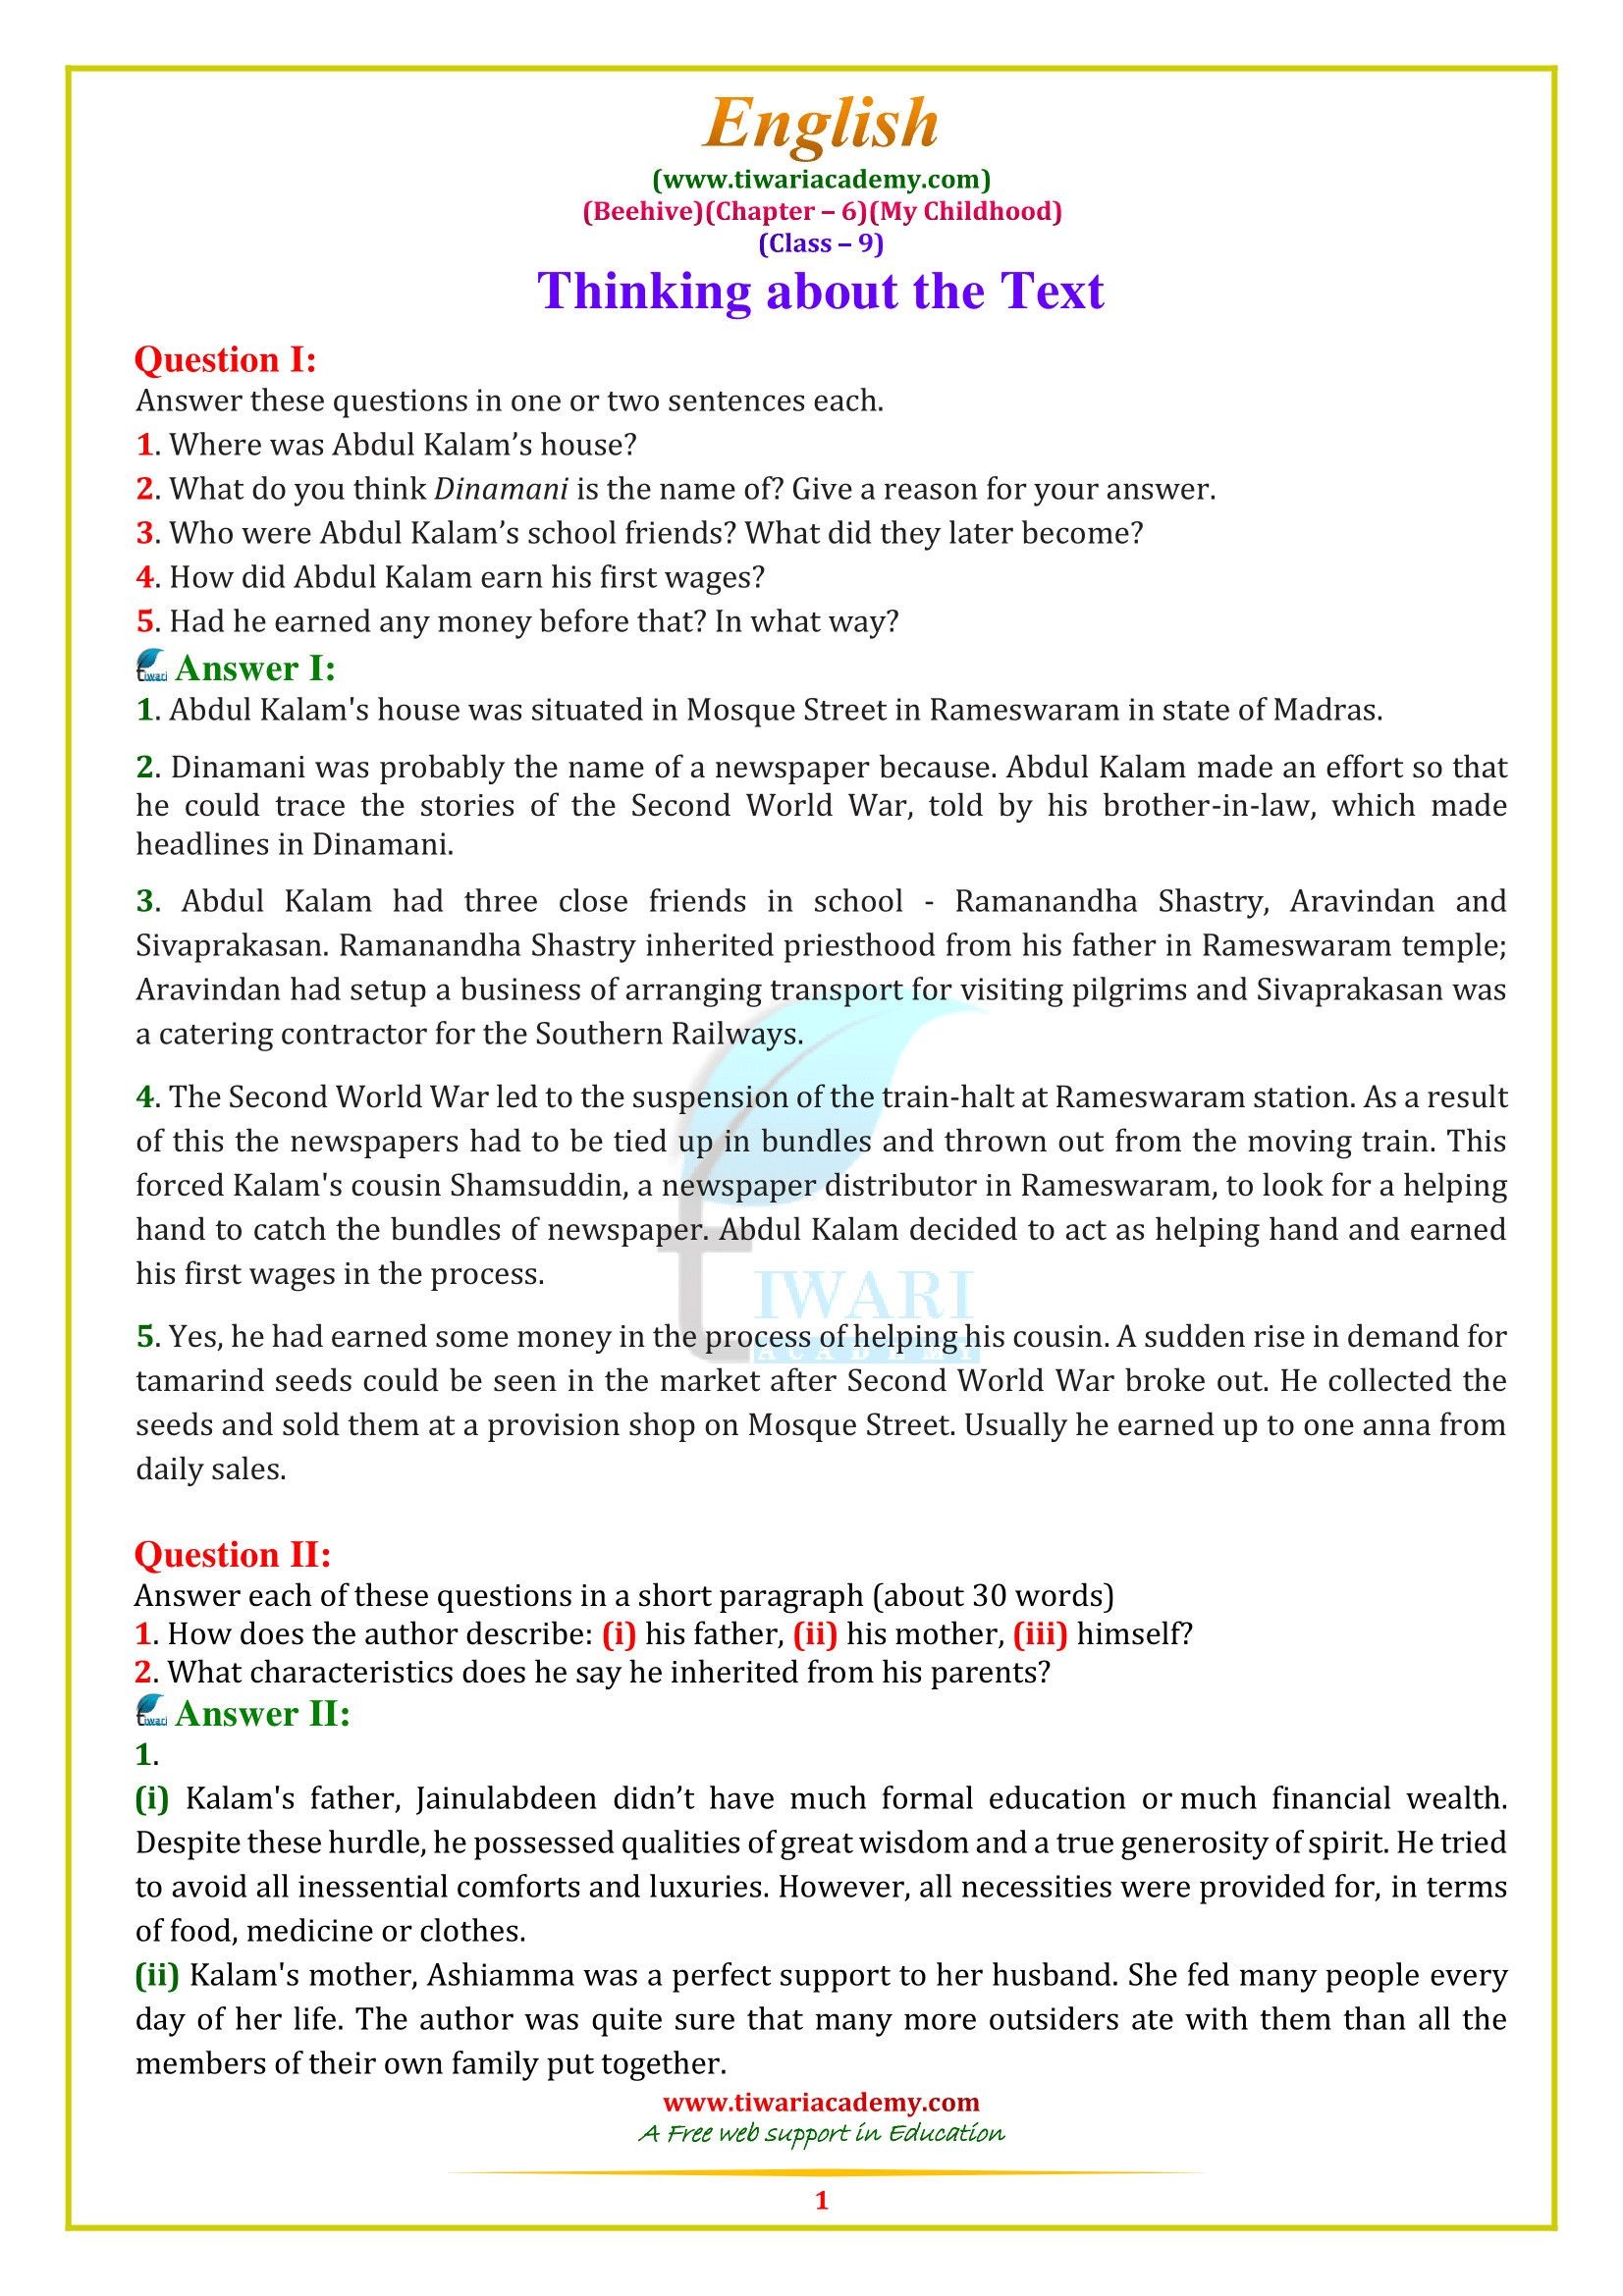 Reading Comprehension Worksheets 6th Grade 4 Reading Prehension Worksheets Sixth Grade 6 9 English